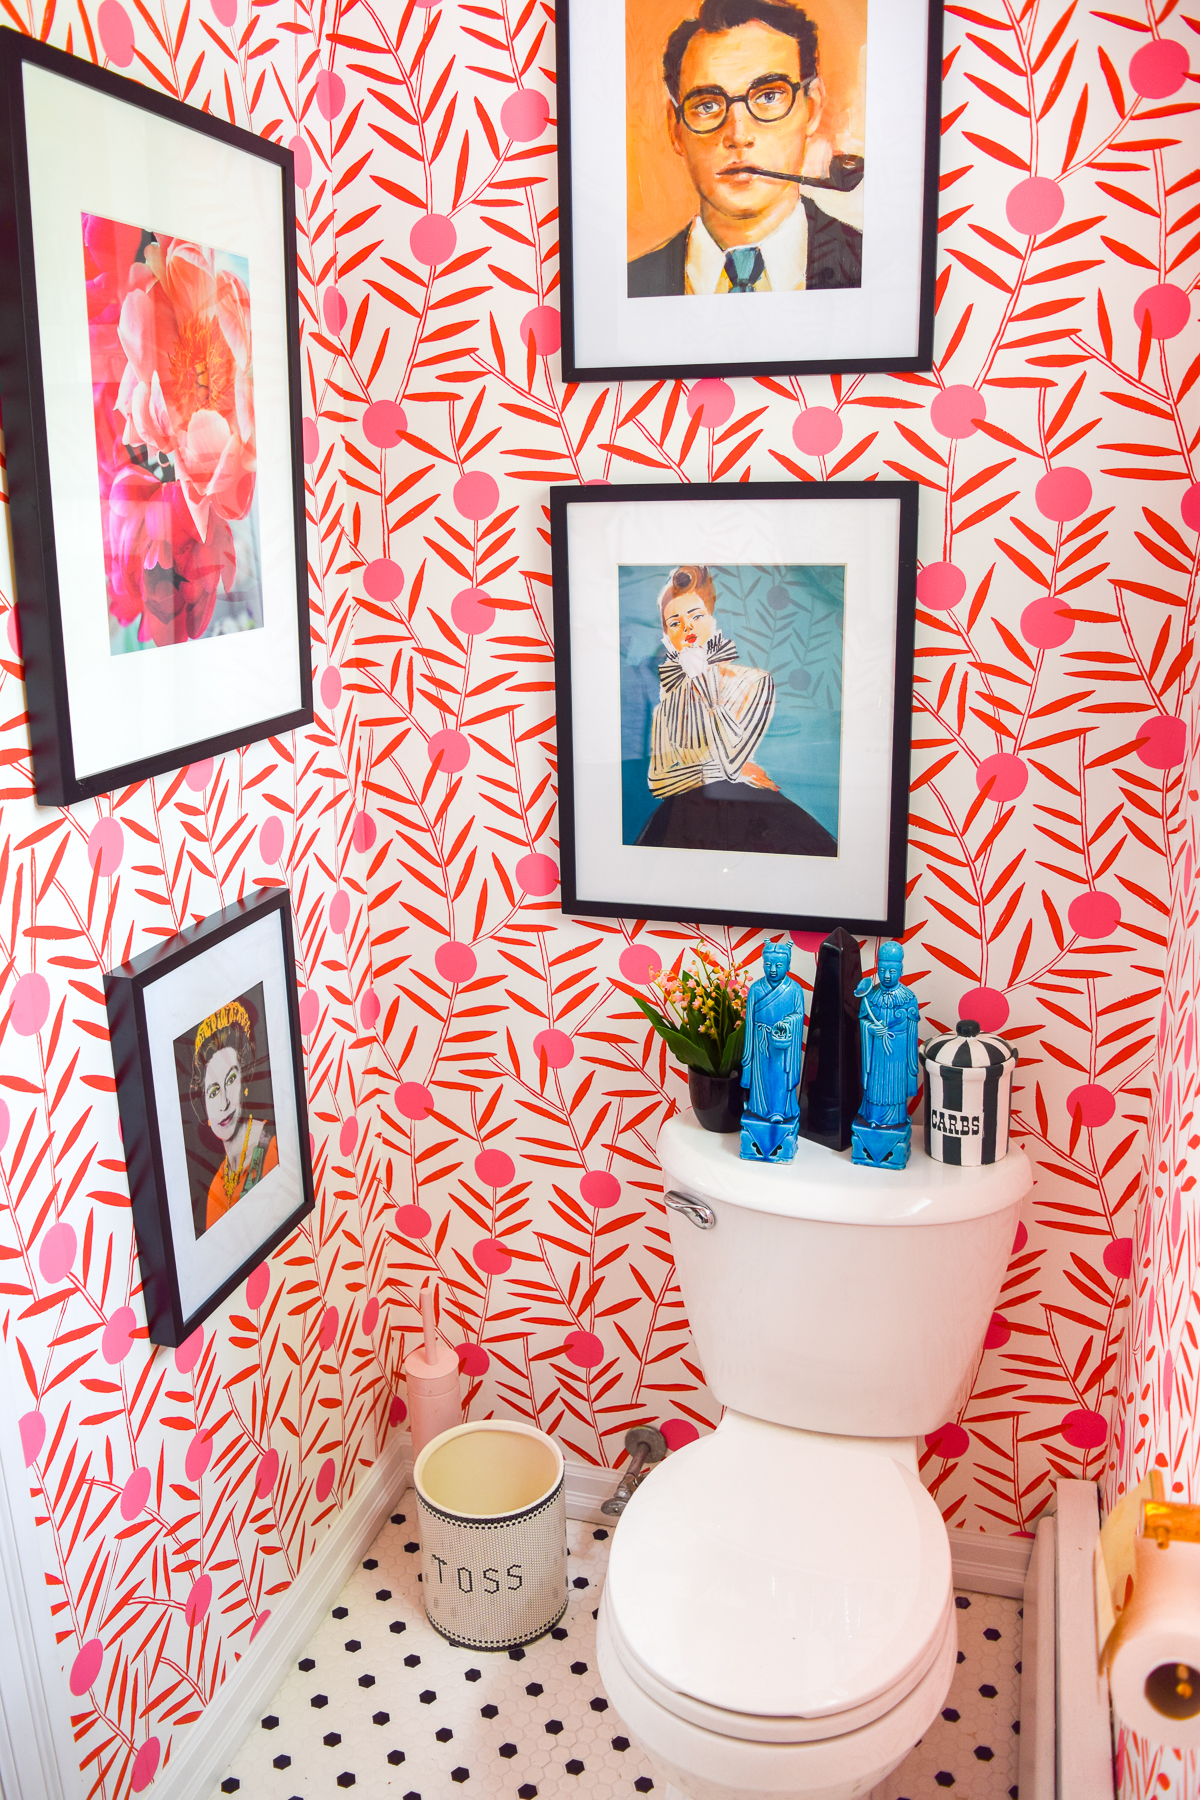 With the help of a little colour, and a lot of shiny brass, I created a powder room that packs a punch! Come see which products I nabbed from Signature Hardware & Build.com to make it happen.